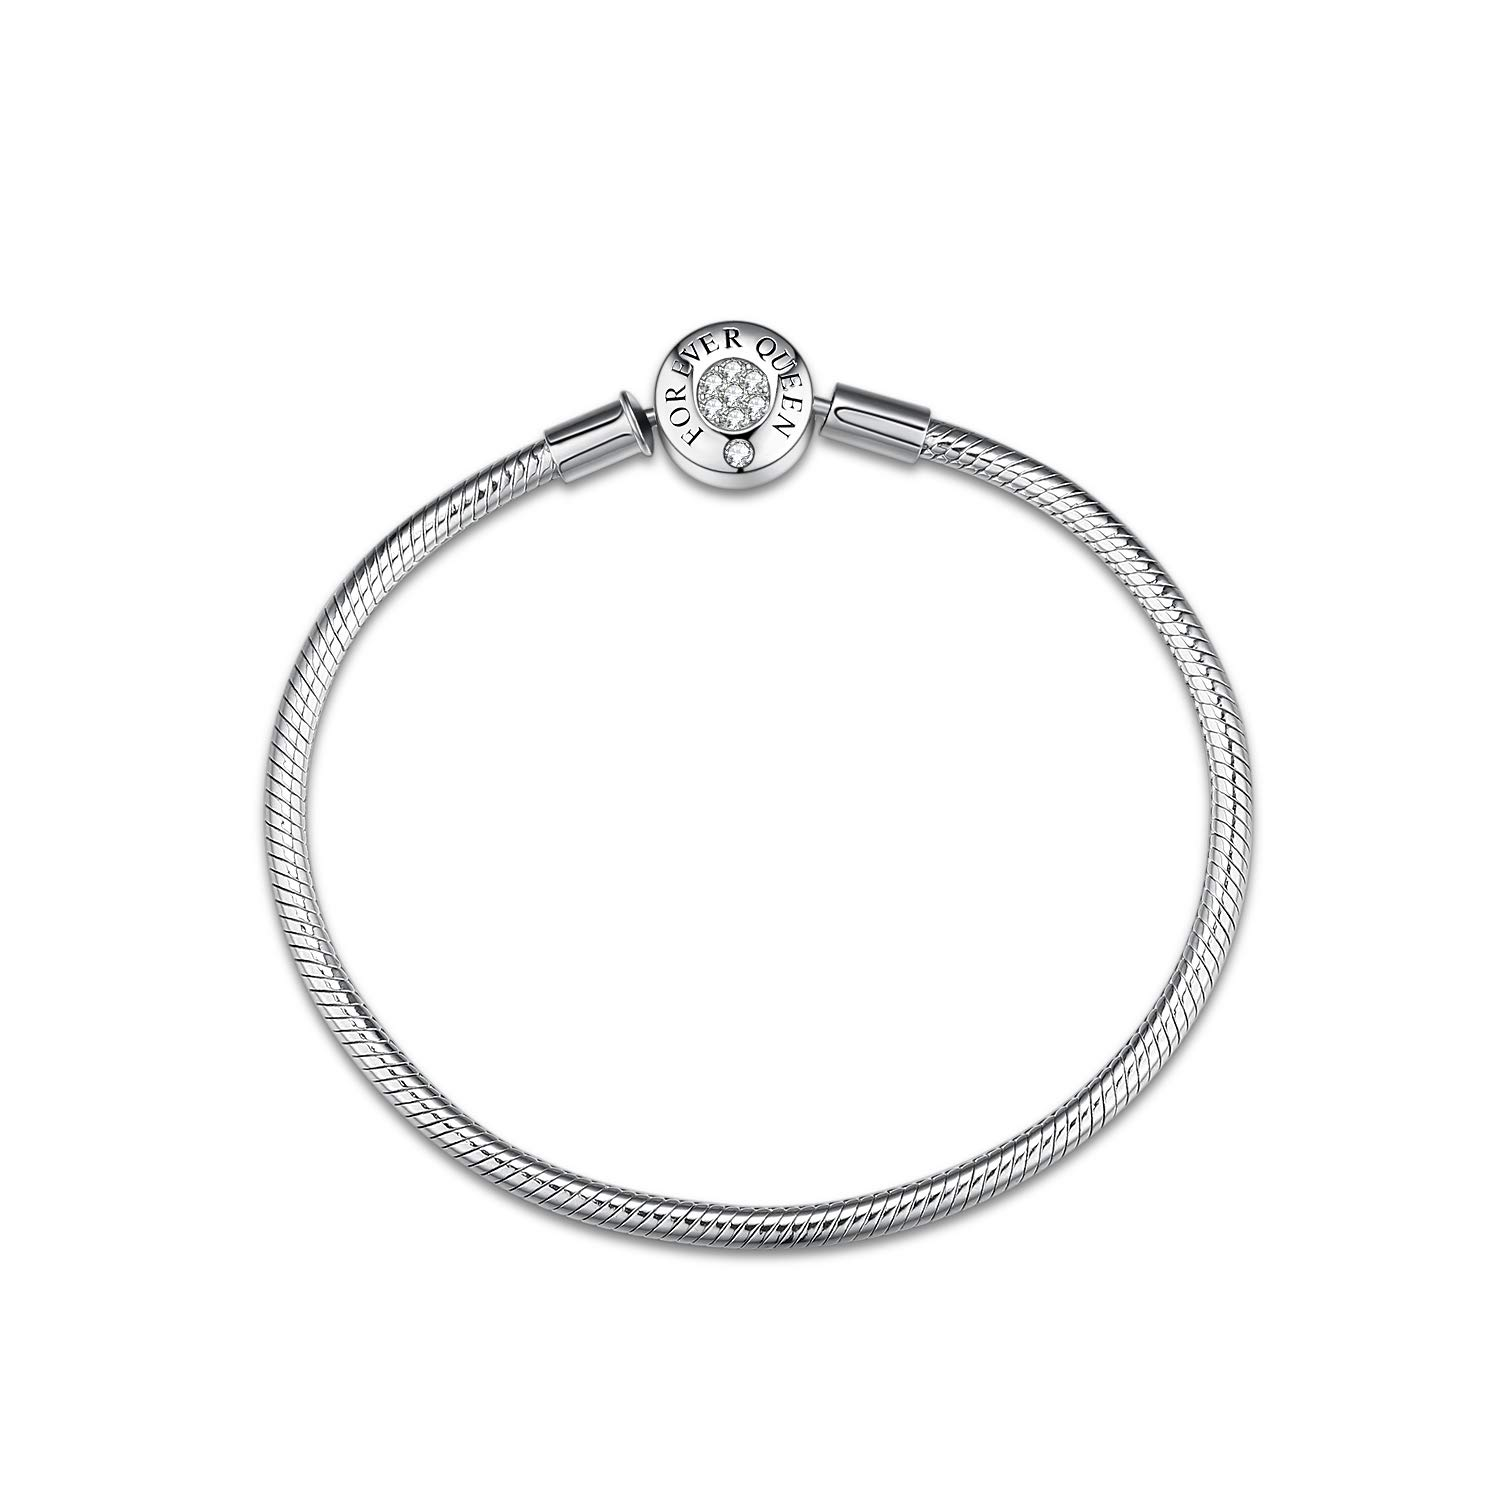 FOREVER QUEEN Charm Bracelet Fit Pandora Charms 925 Sterling Silver Basic Snake Chain Bracelet for Women Girls, Signature Bracelet with Sparkling Round Clasp Charm Clear CZ FQ00016